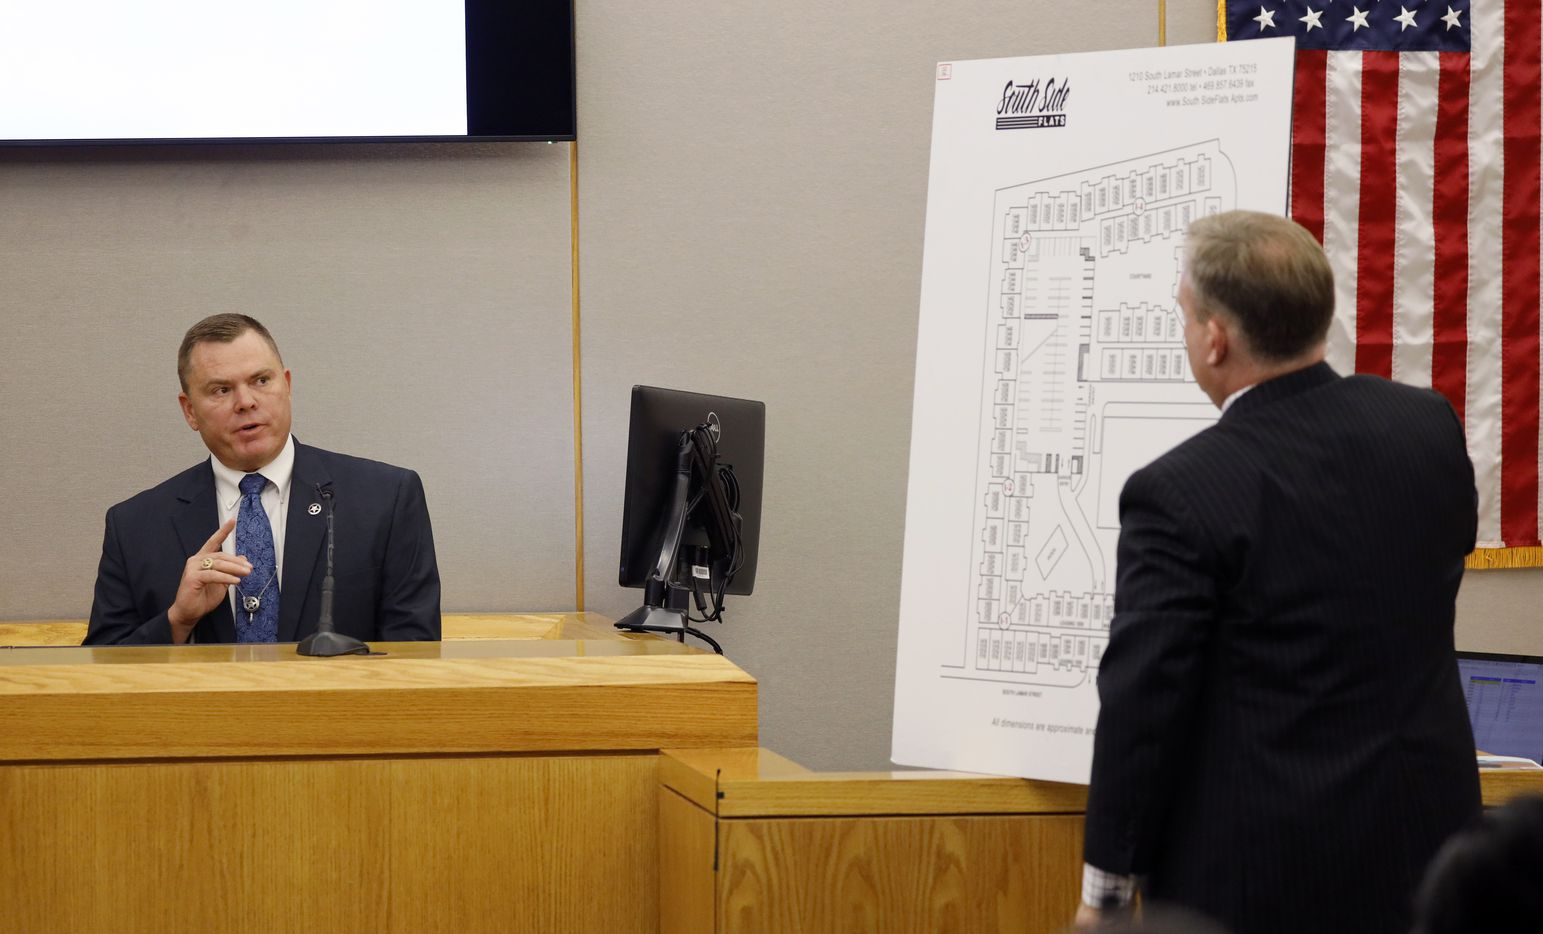 Assistant District Attorney Jason Hermus (right) questions Texas Ranger Michael Stoner on the witness stand during the morning session. Fired Dallas police Officer Amber Guyger is facing a murder charge in the 204th District Court at the Frank Crowley Courts Building in Dallas, Thursday, September 26, 2019.